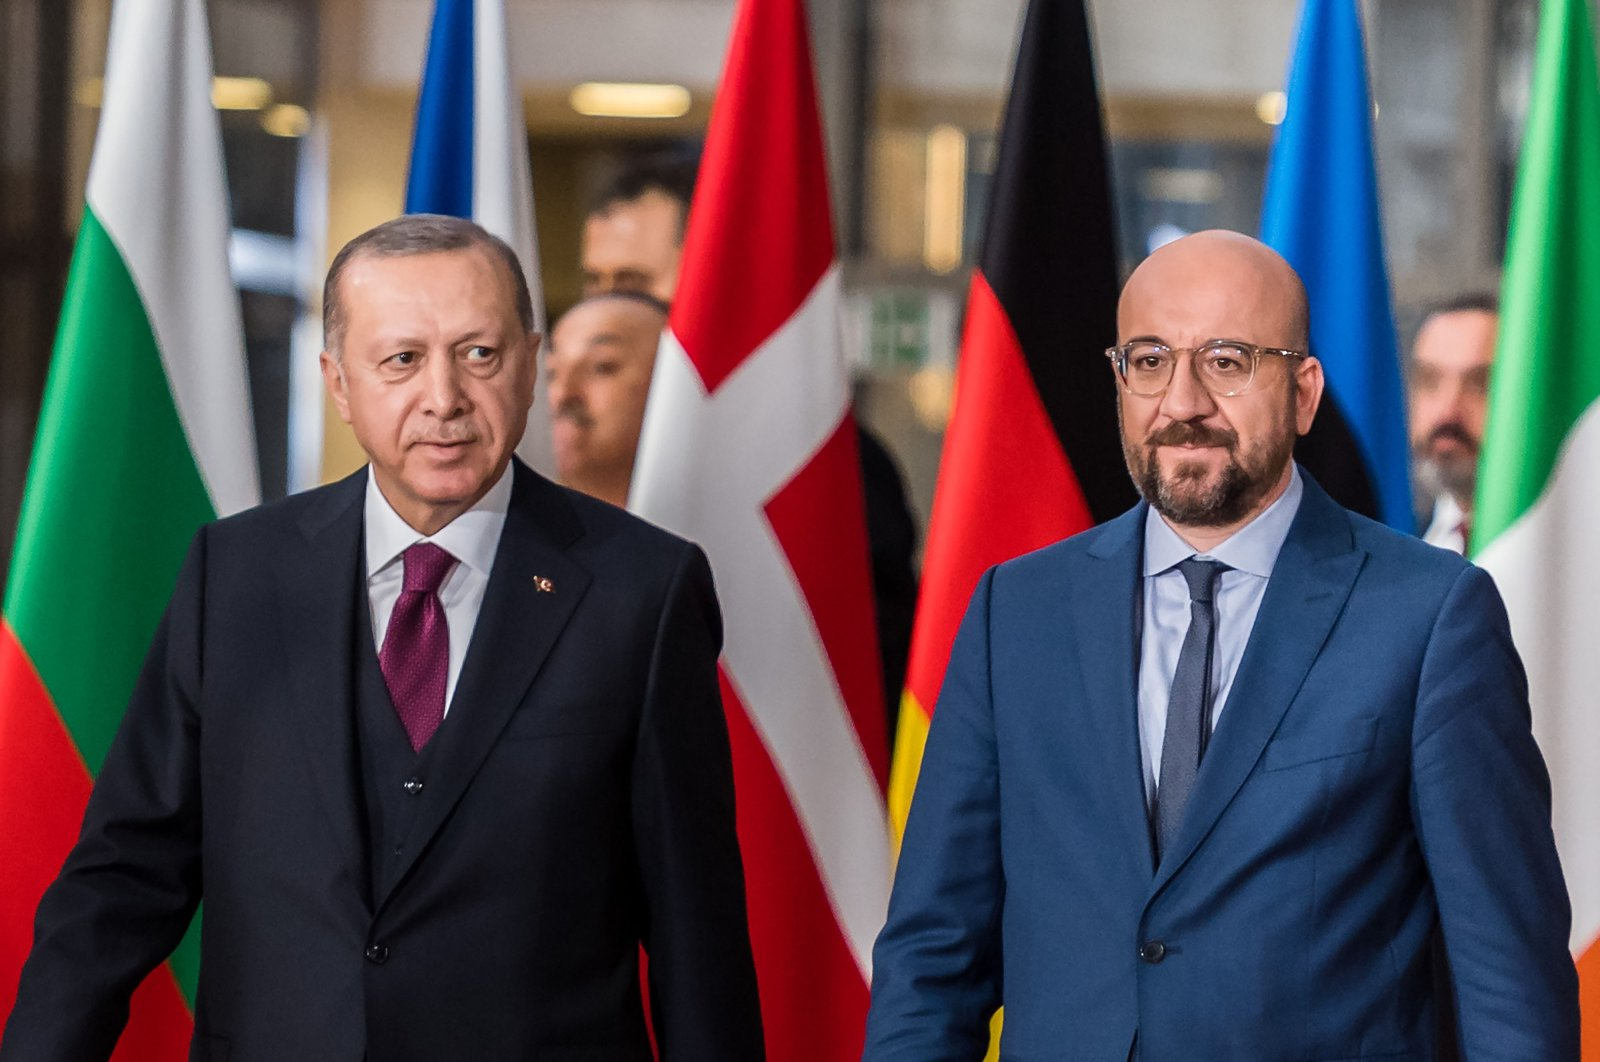 President Recep Tayyip Erdoğan (L) and Charles Michel, president of the European Union (EU), arrive ahead of talks in Brussels, Belgium, March 9, 2020. (Photo by Getty Images)